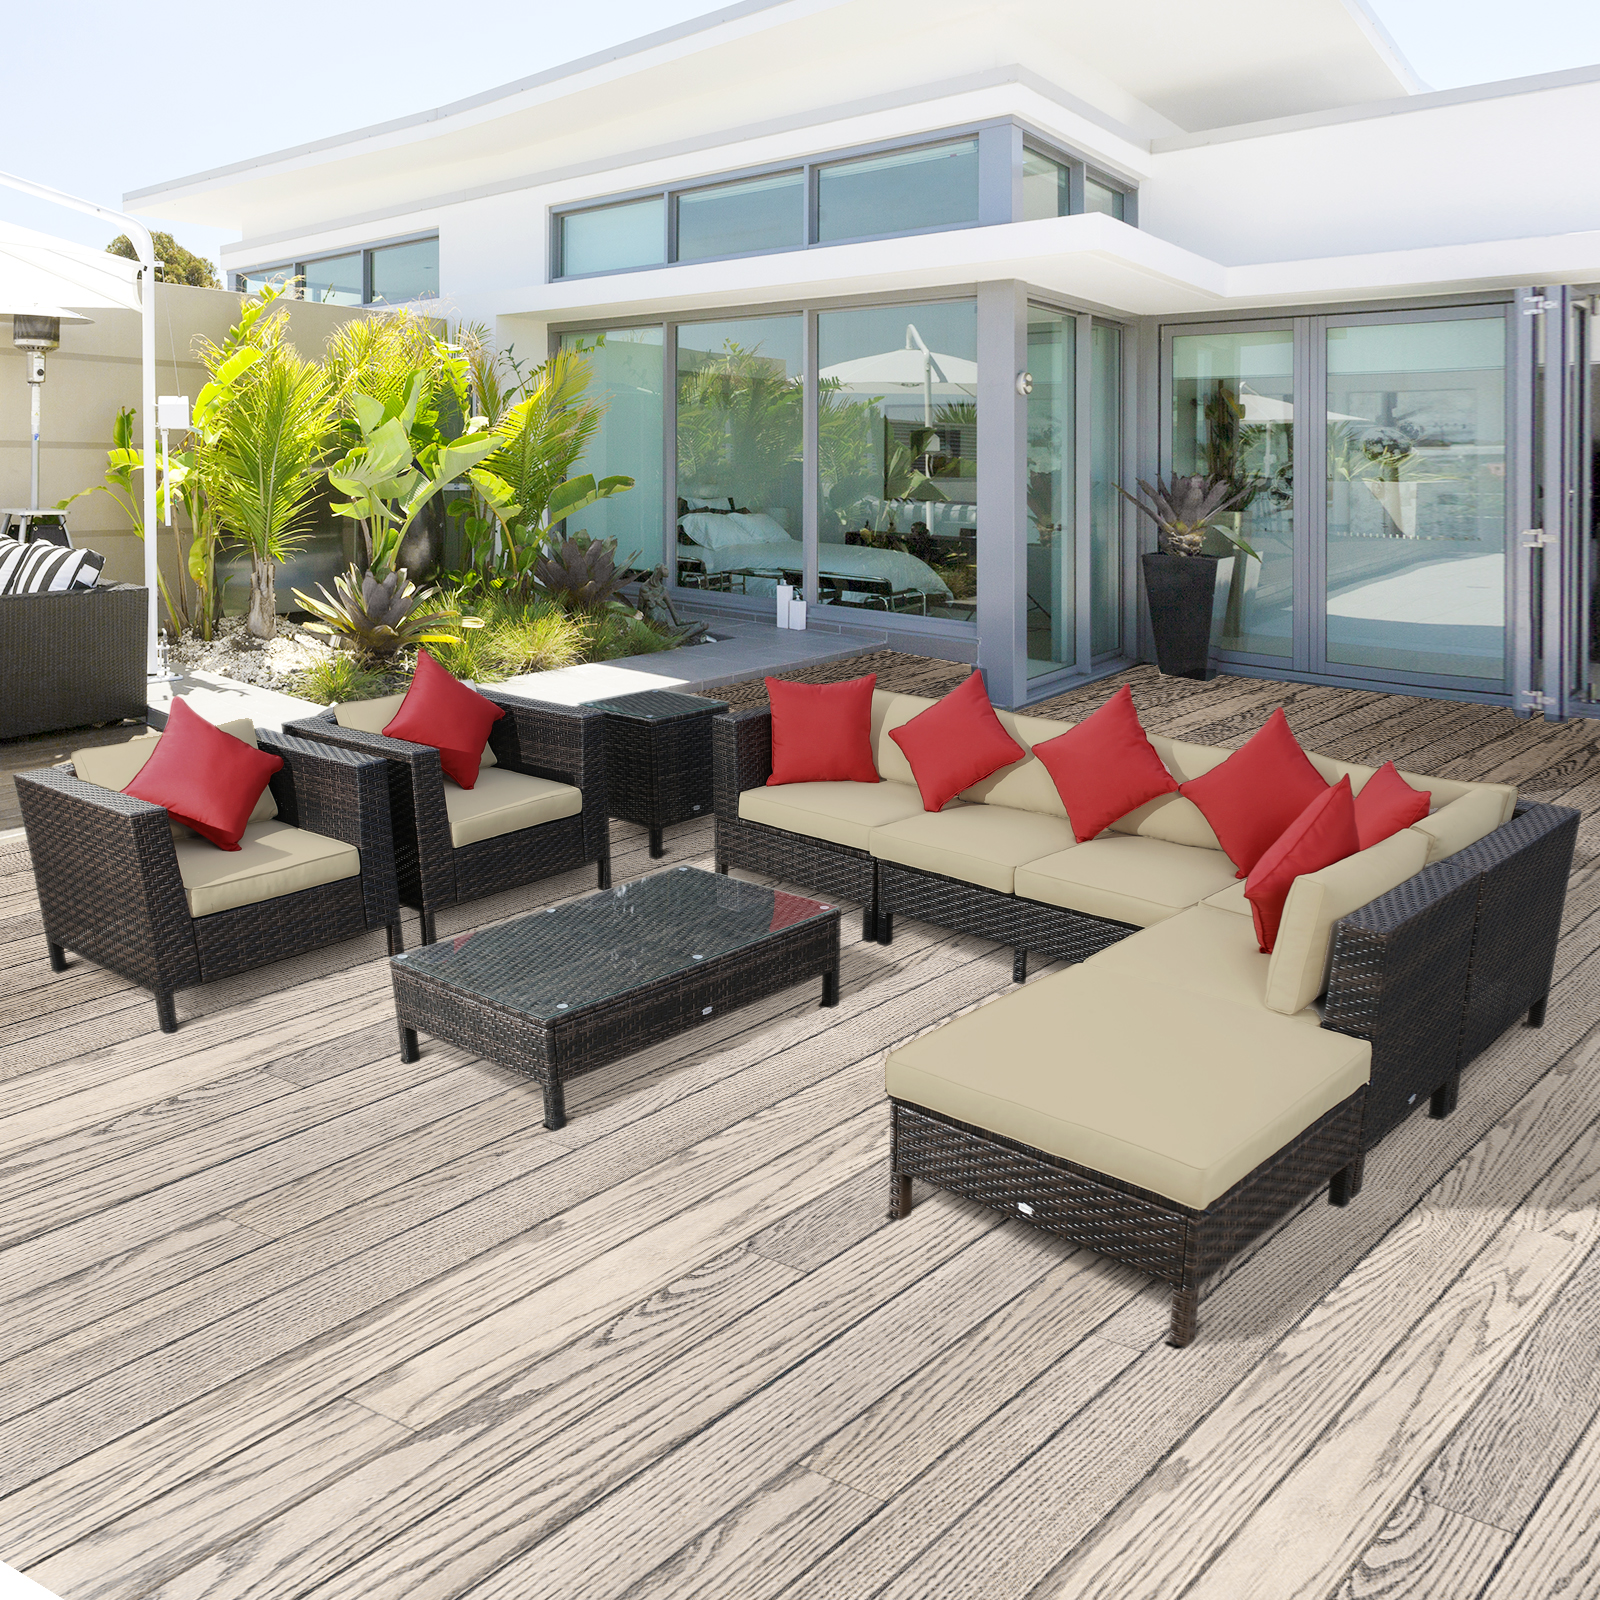 Garden Furniture Corner Sofa Ebay Details About 9pc Rattan Wicker Outdoor Patio Furniture Sectional Seating Sofa Set